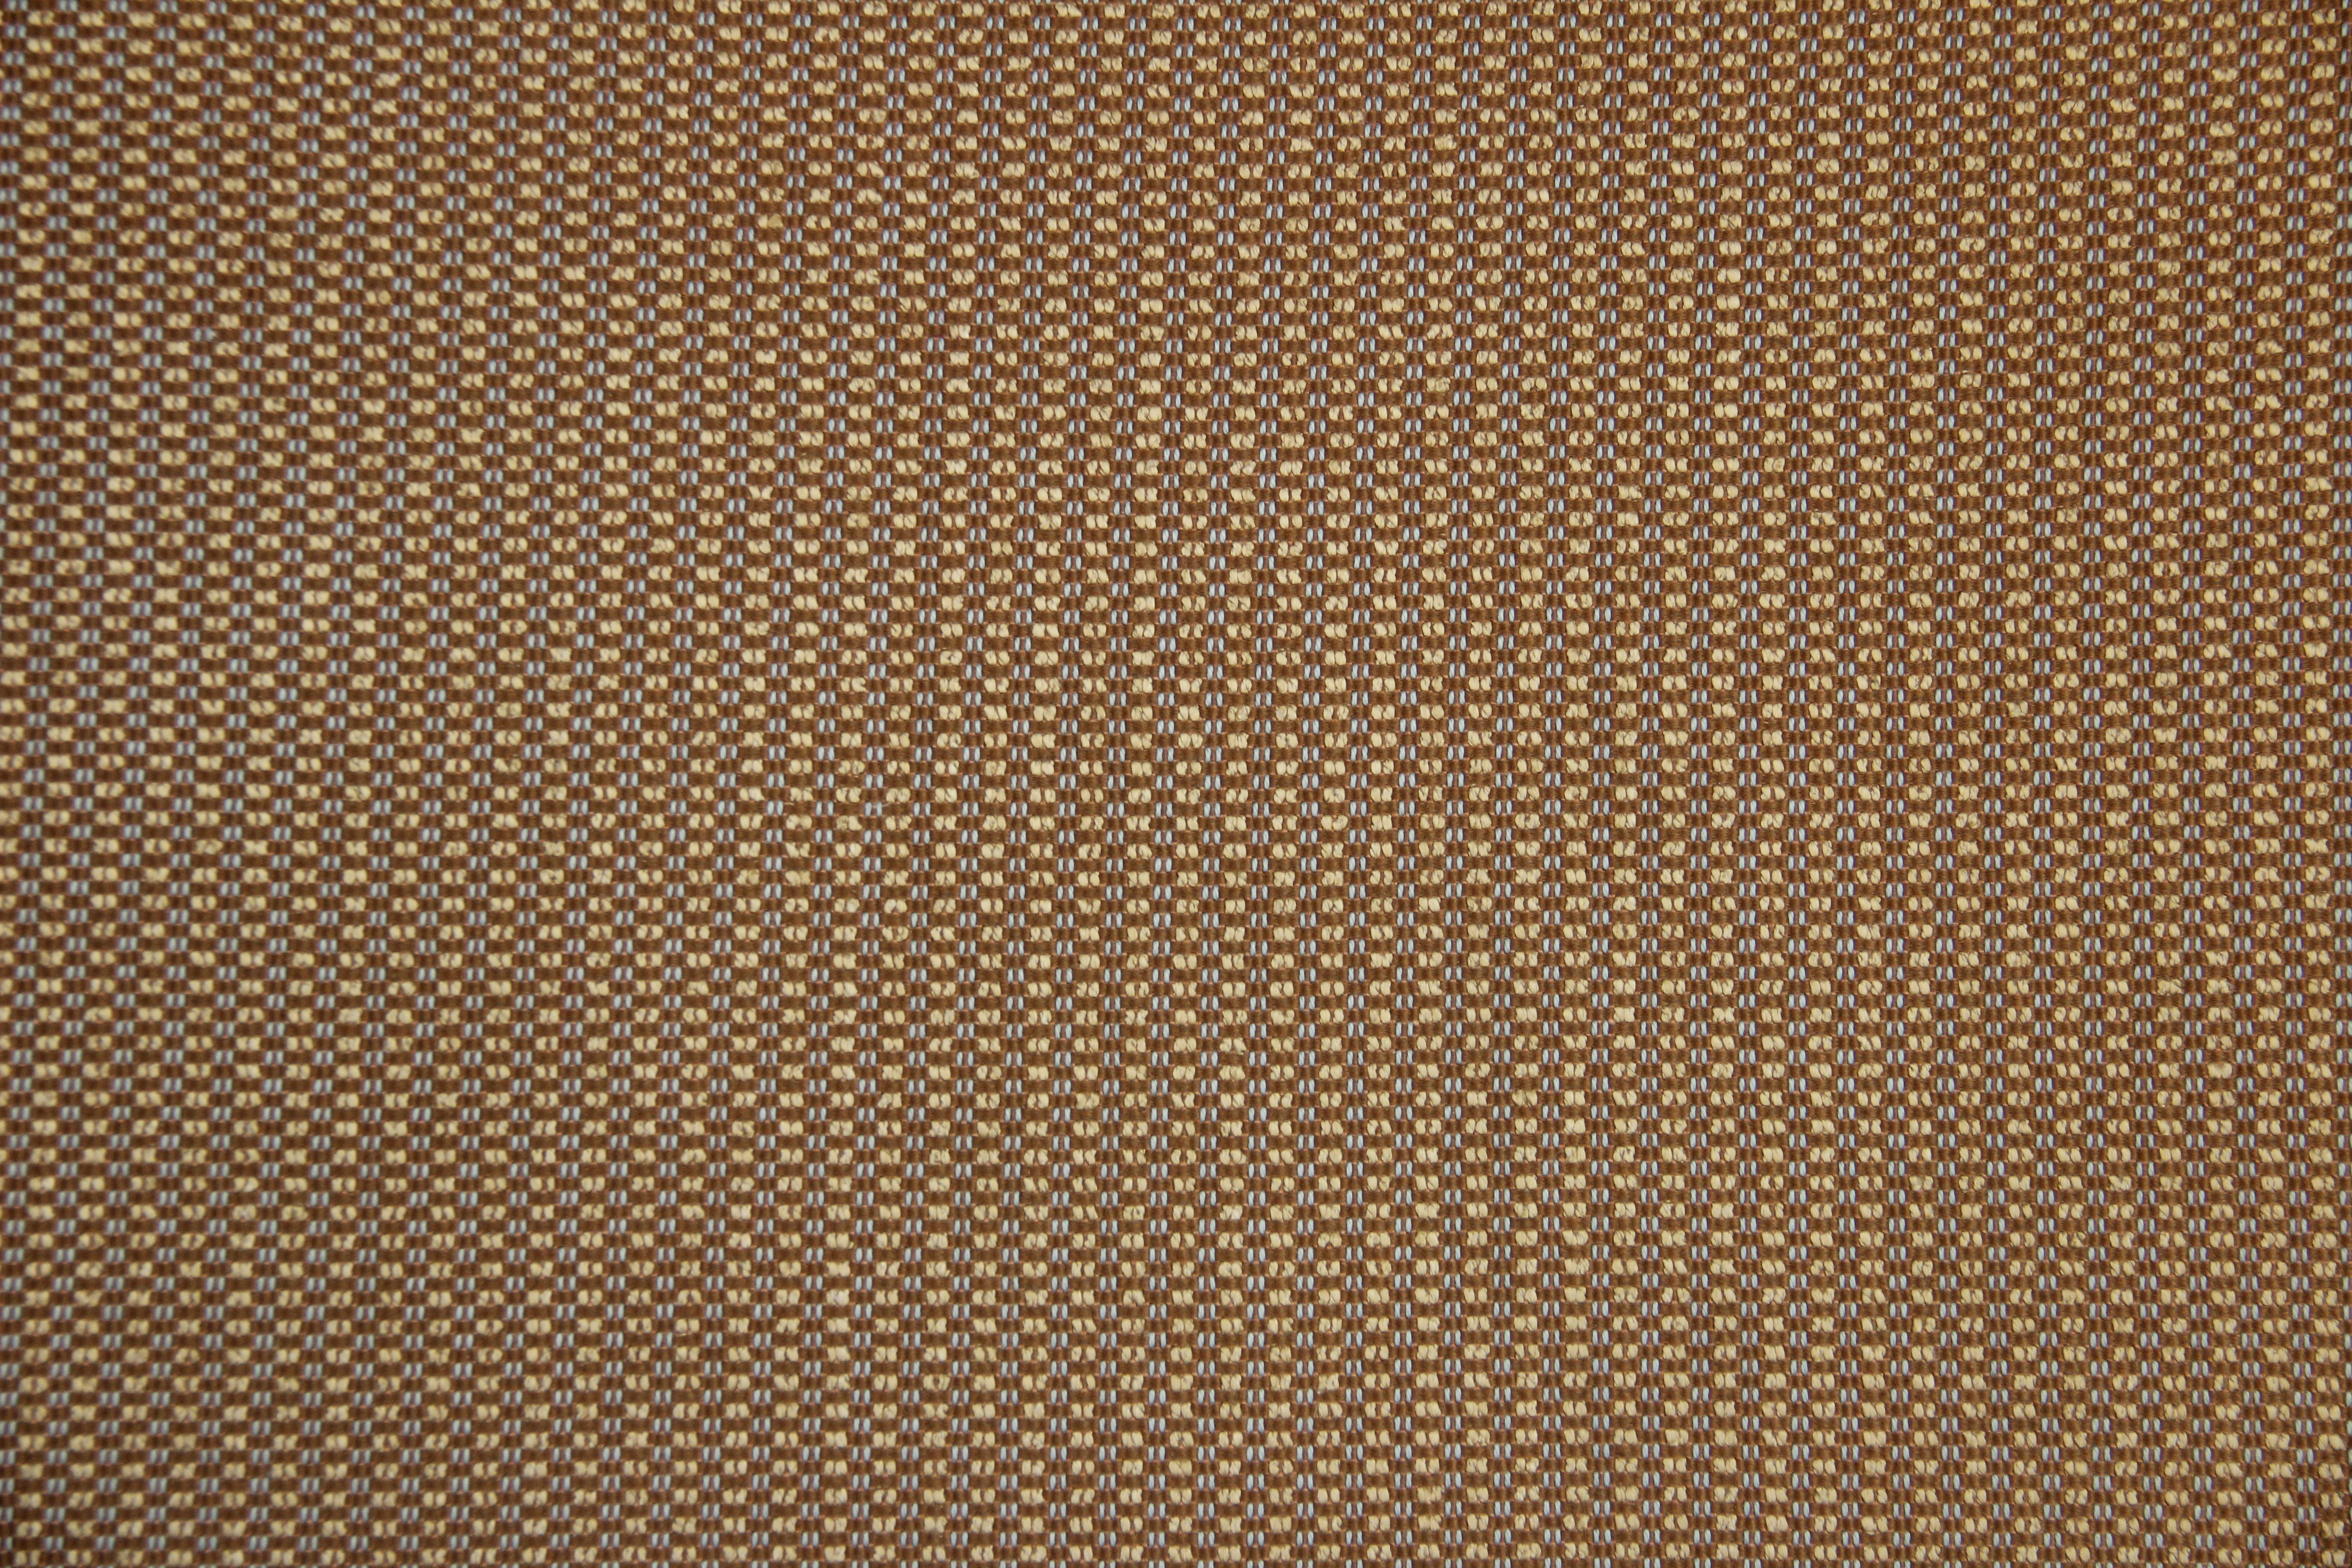 Chair Fabric Texture 2 323040273 further Turquoise Bedroom Is Trend In 2017 For More Freshness additionally Liquor Cabi  Woodworking Plans Breeding Bench To Craftsman as well Seamless White Leather Texture Free as well Ipad 3gen Retina Wallpaper Basic Leather 292440264. on brown leather sofa